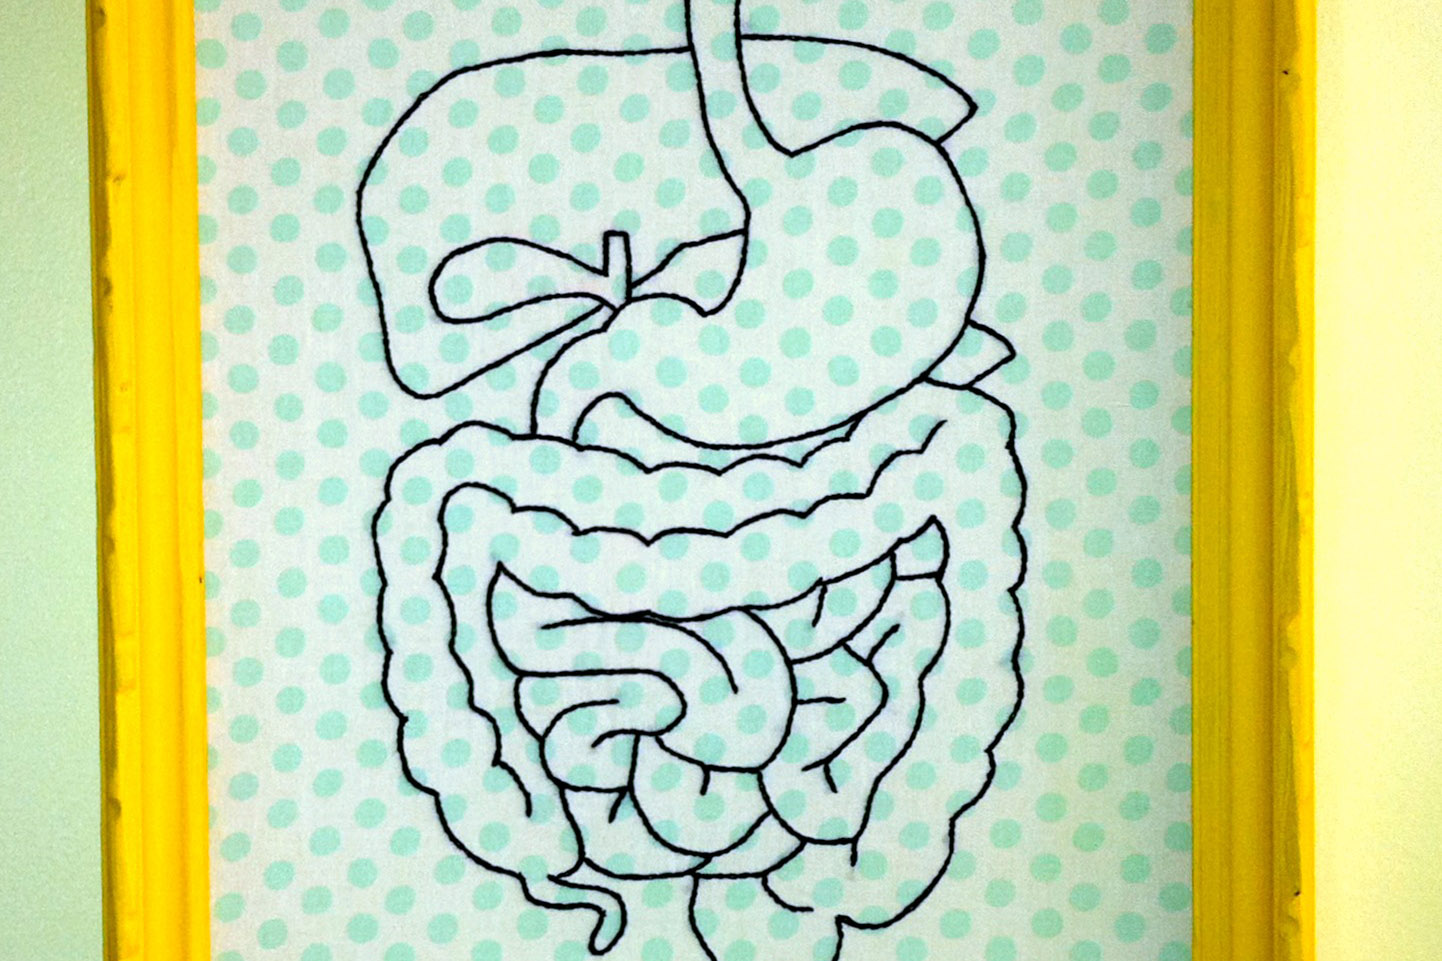 An embroidered representation of the average person's digestive system. Black thread on a mint and white polka dot background.